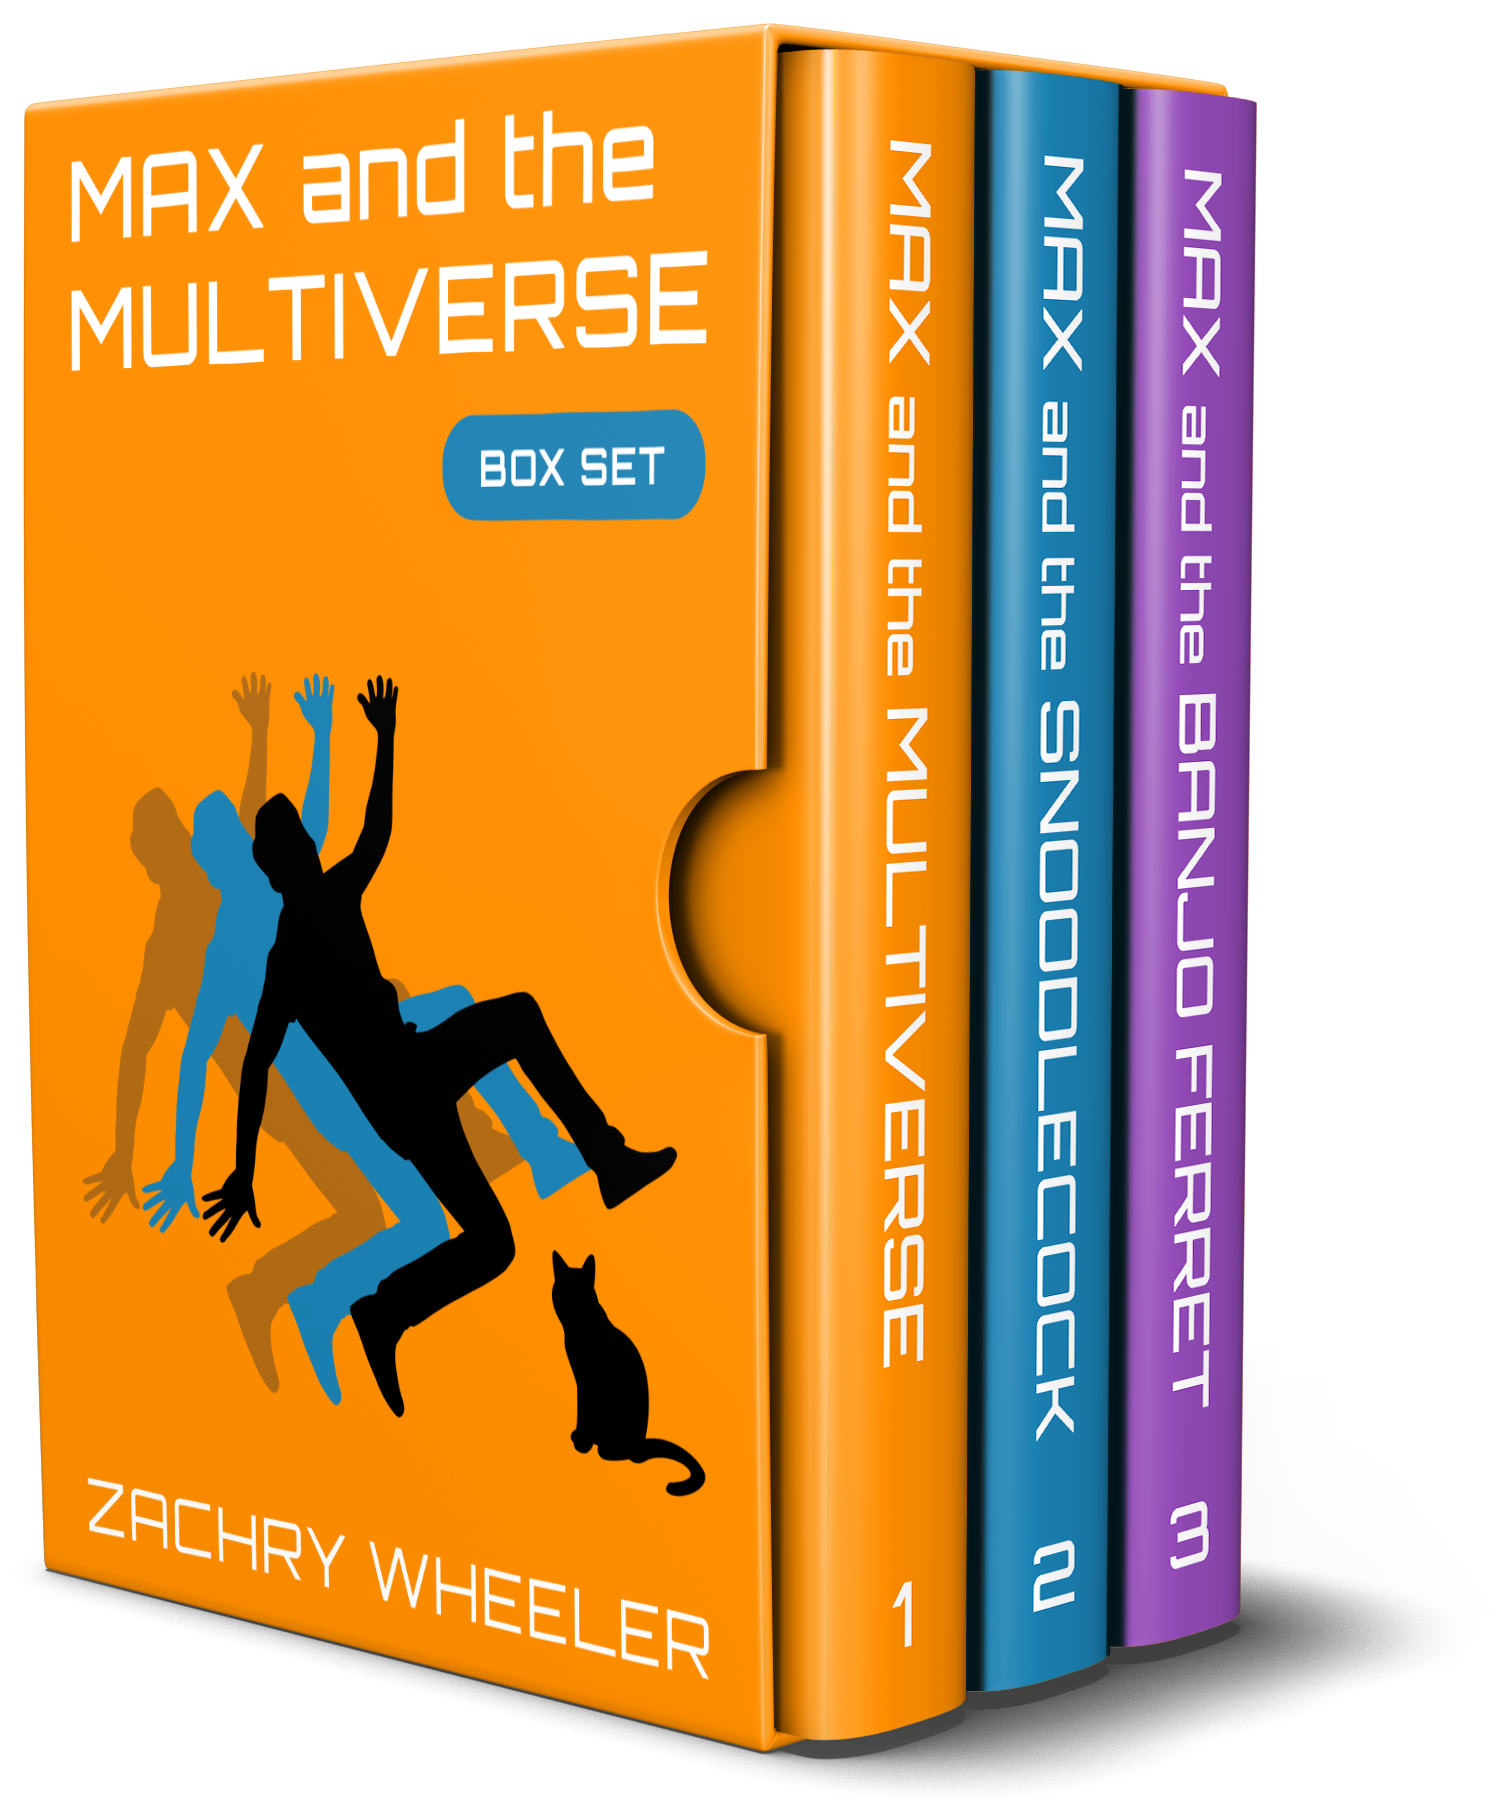 Max and the Multiverse Box Set by Zachry Wheeler